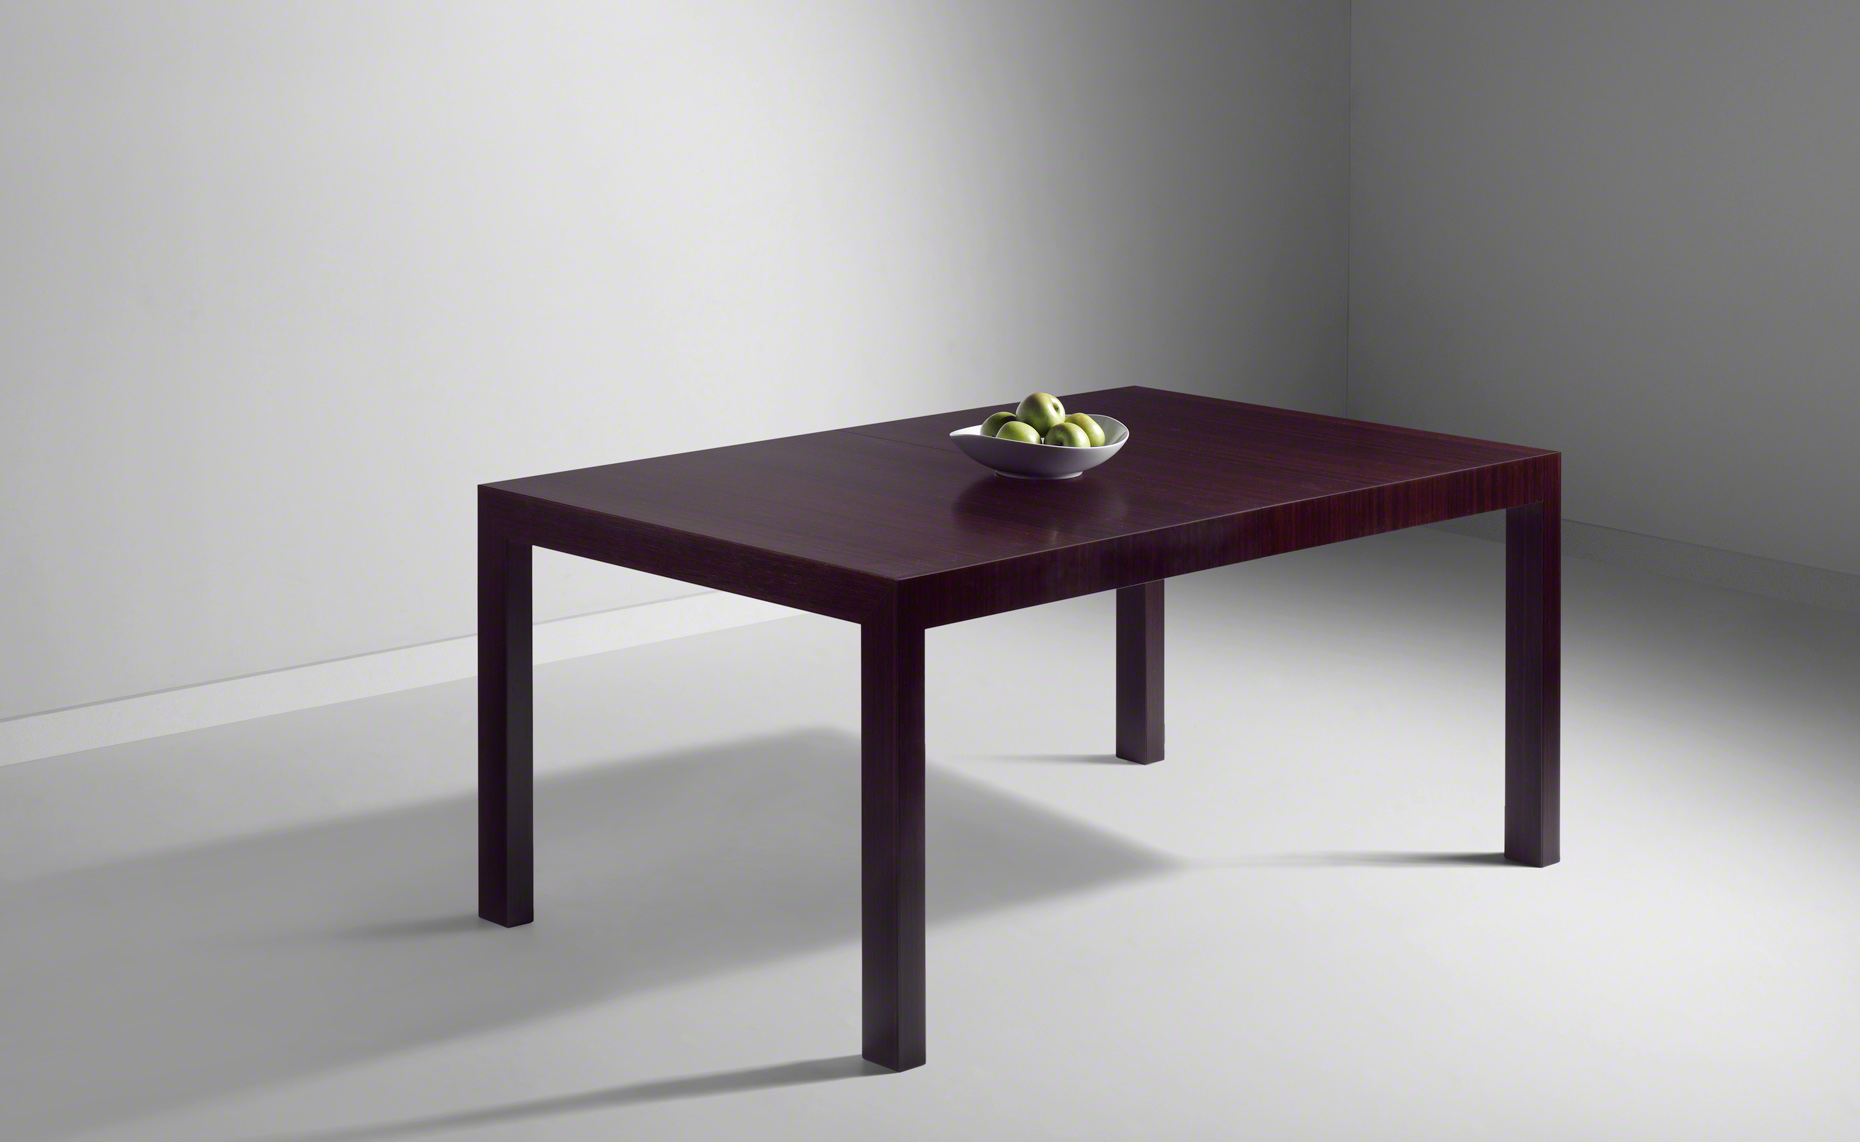 Kagu Furniture Designs Table 1.jpg